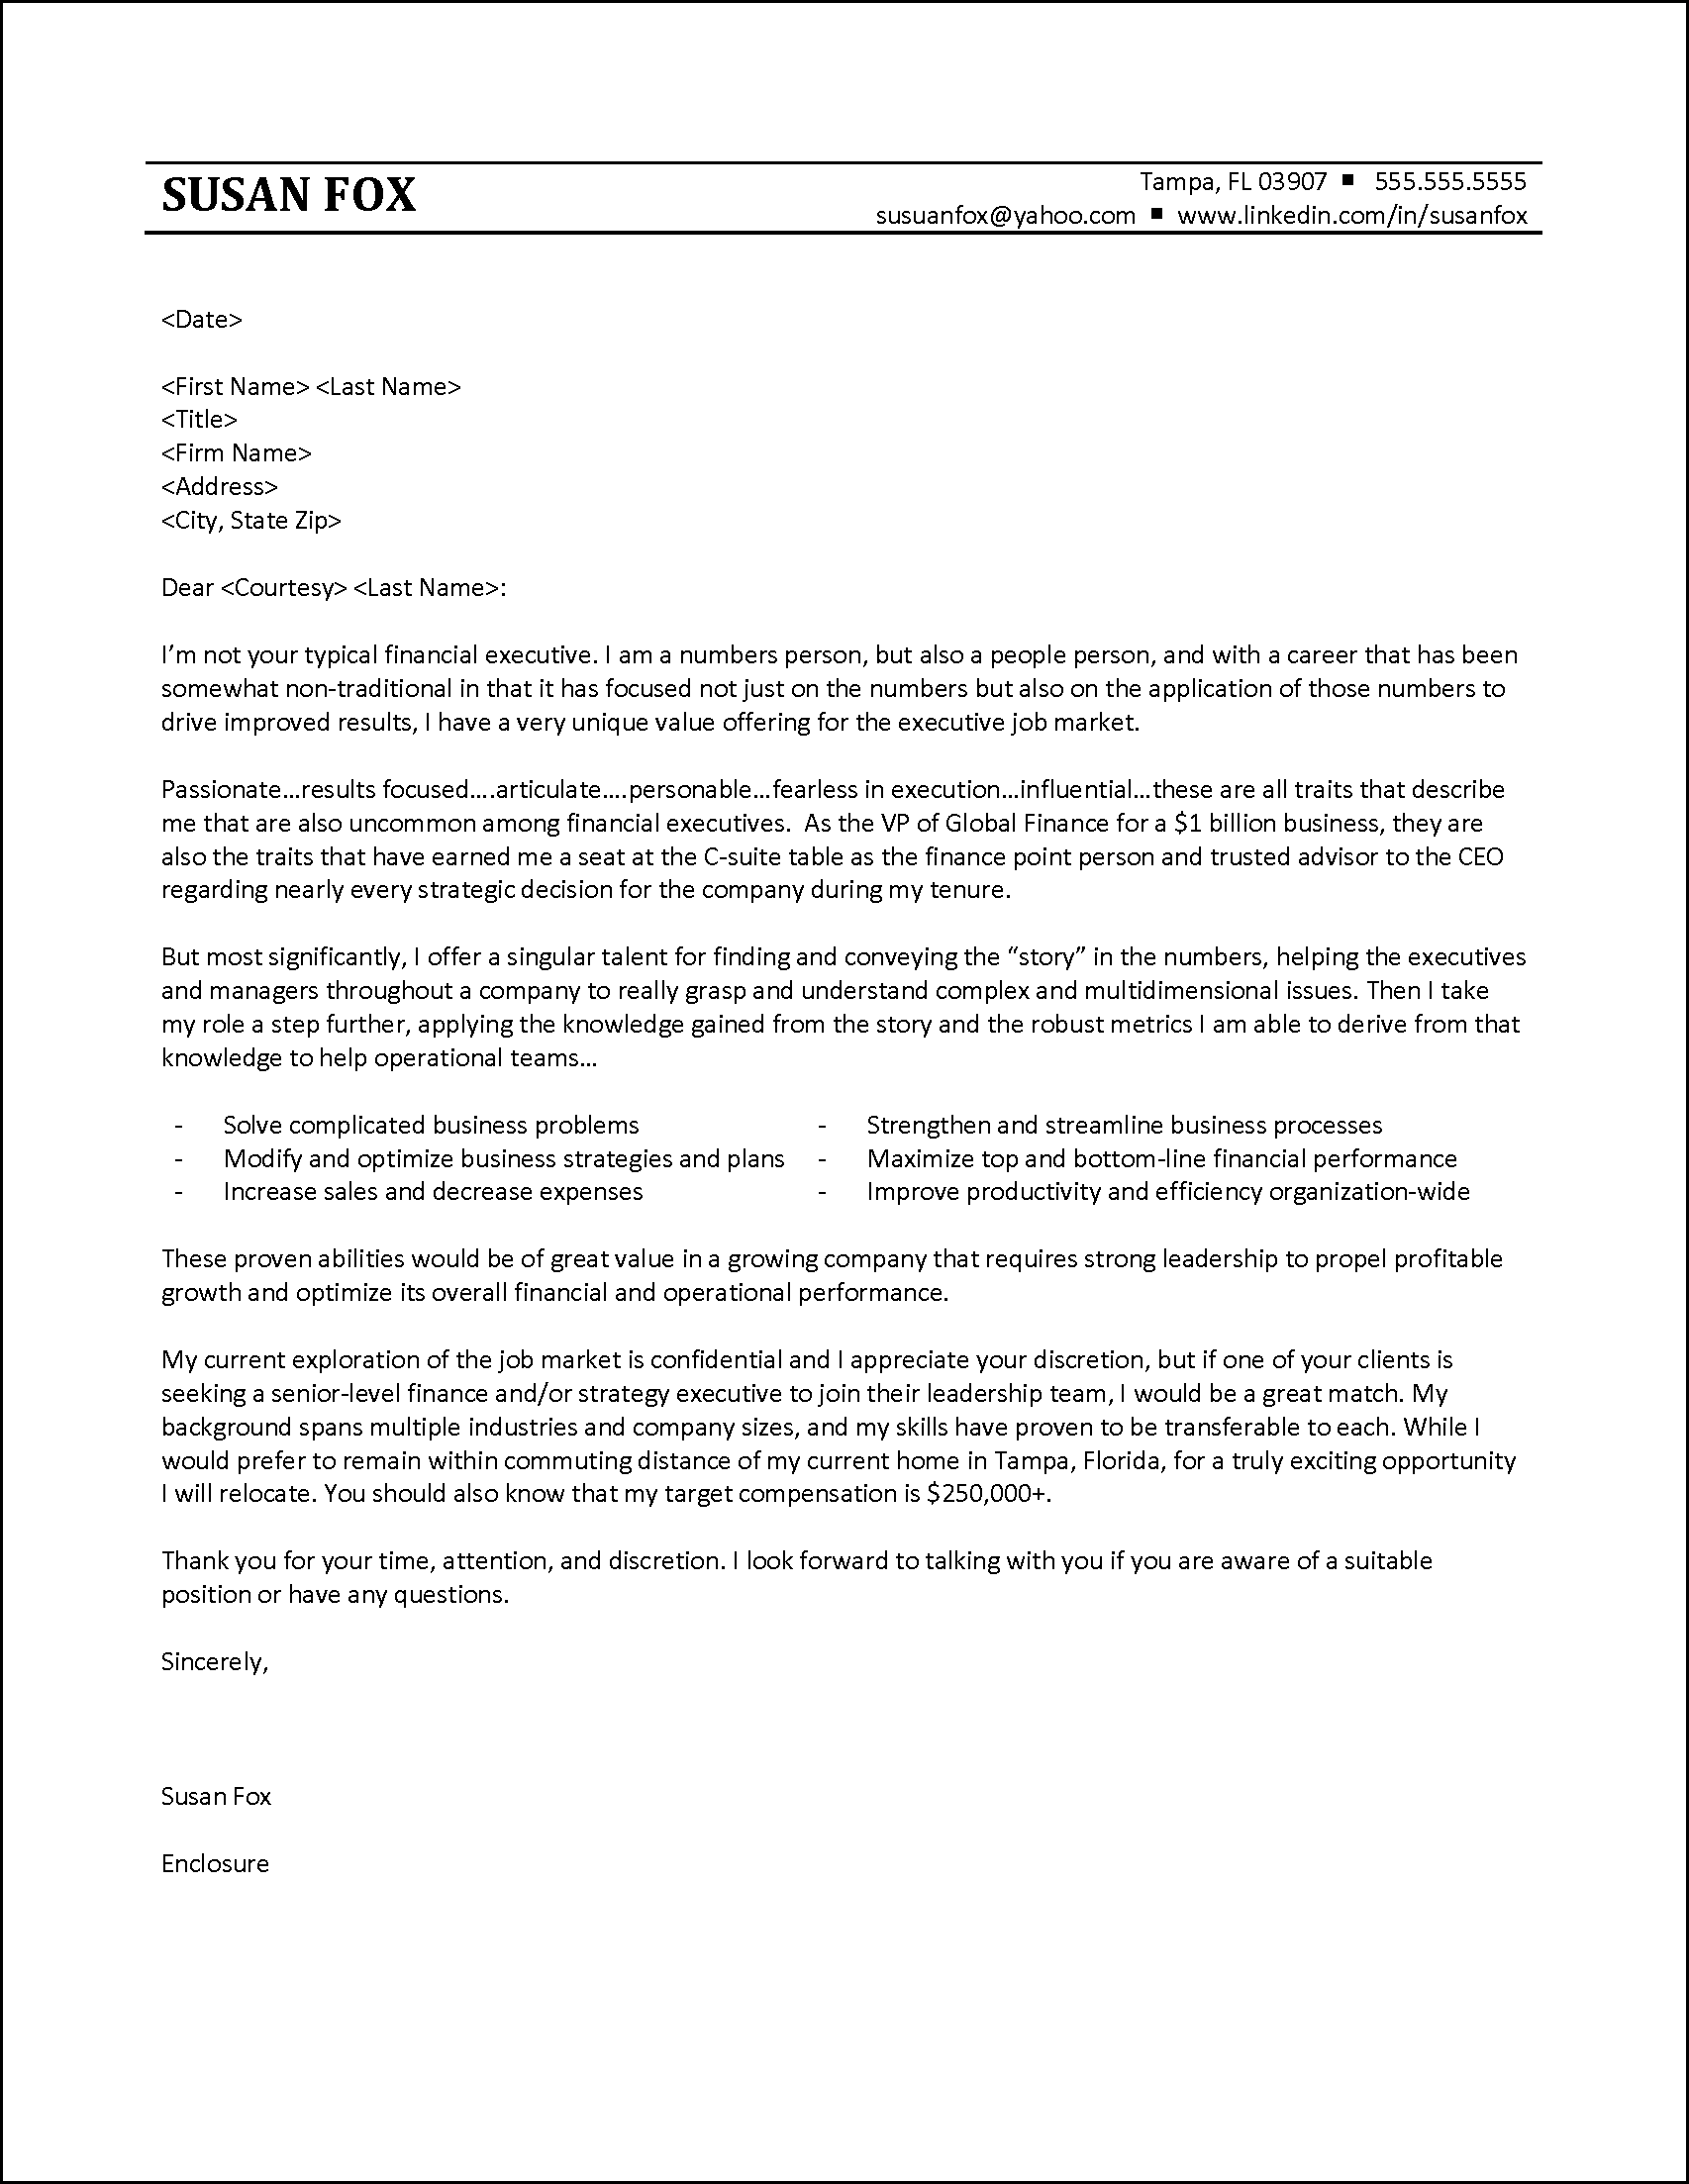 Example Cover Letter To Executive Recruiter  Executive Cover Letter